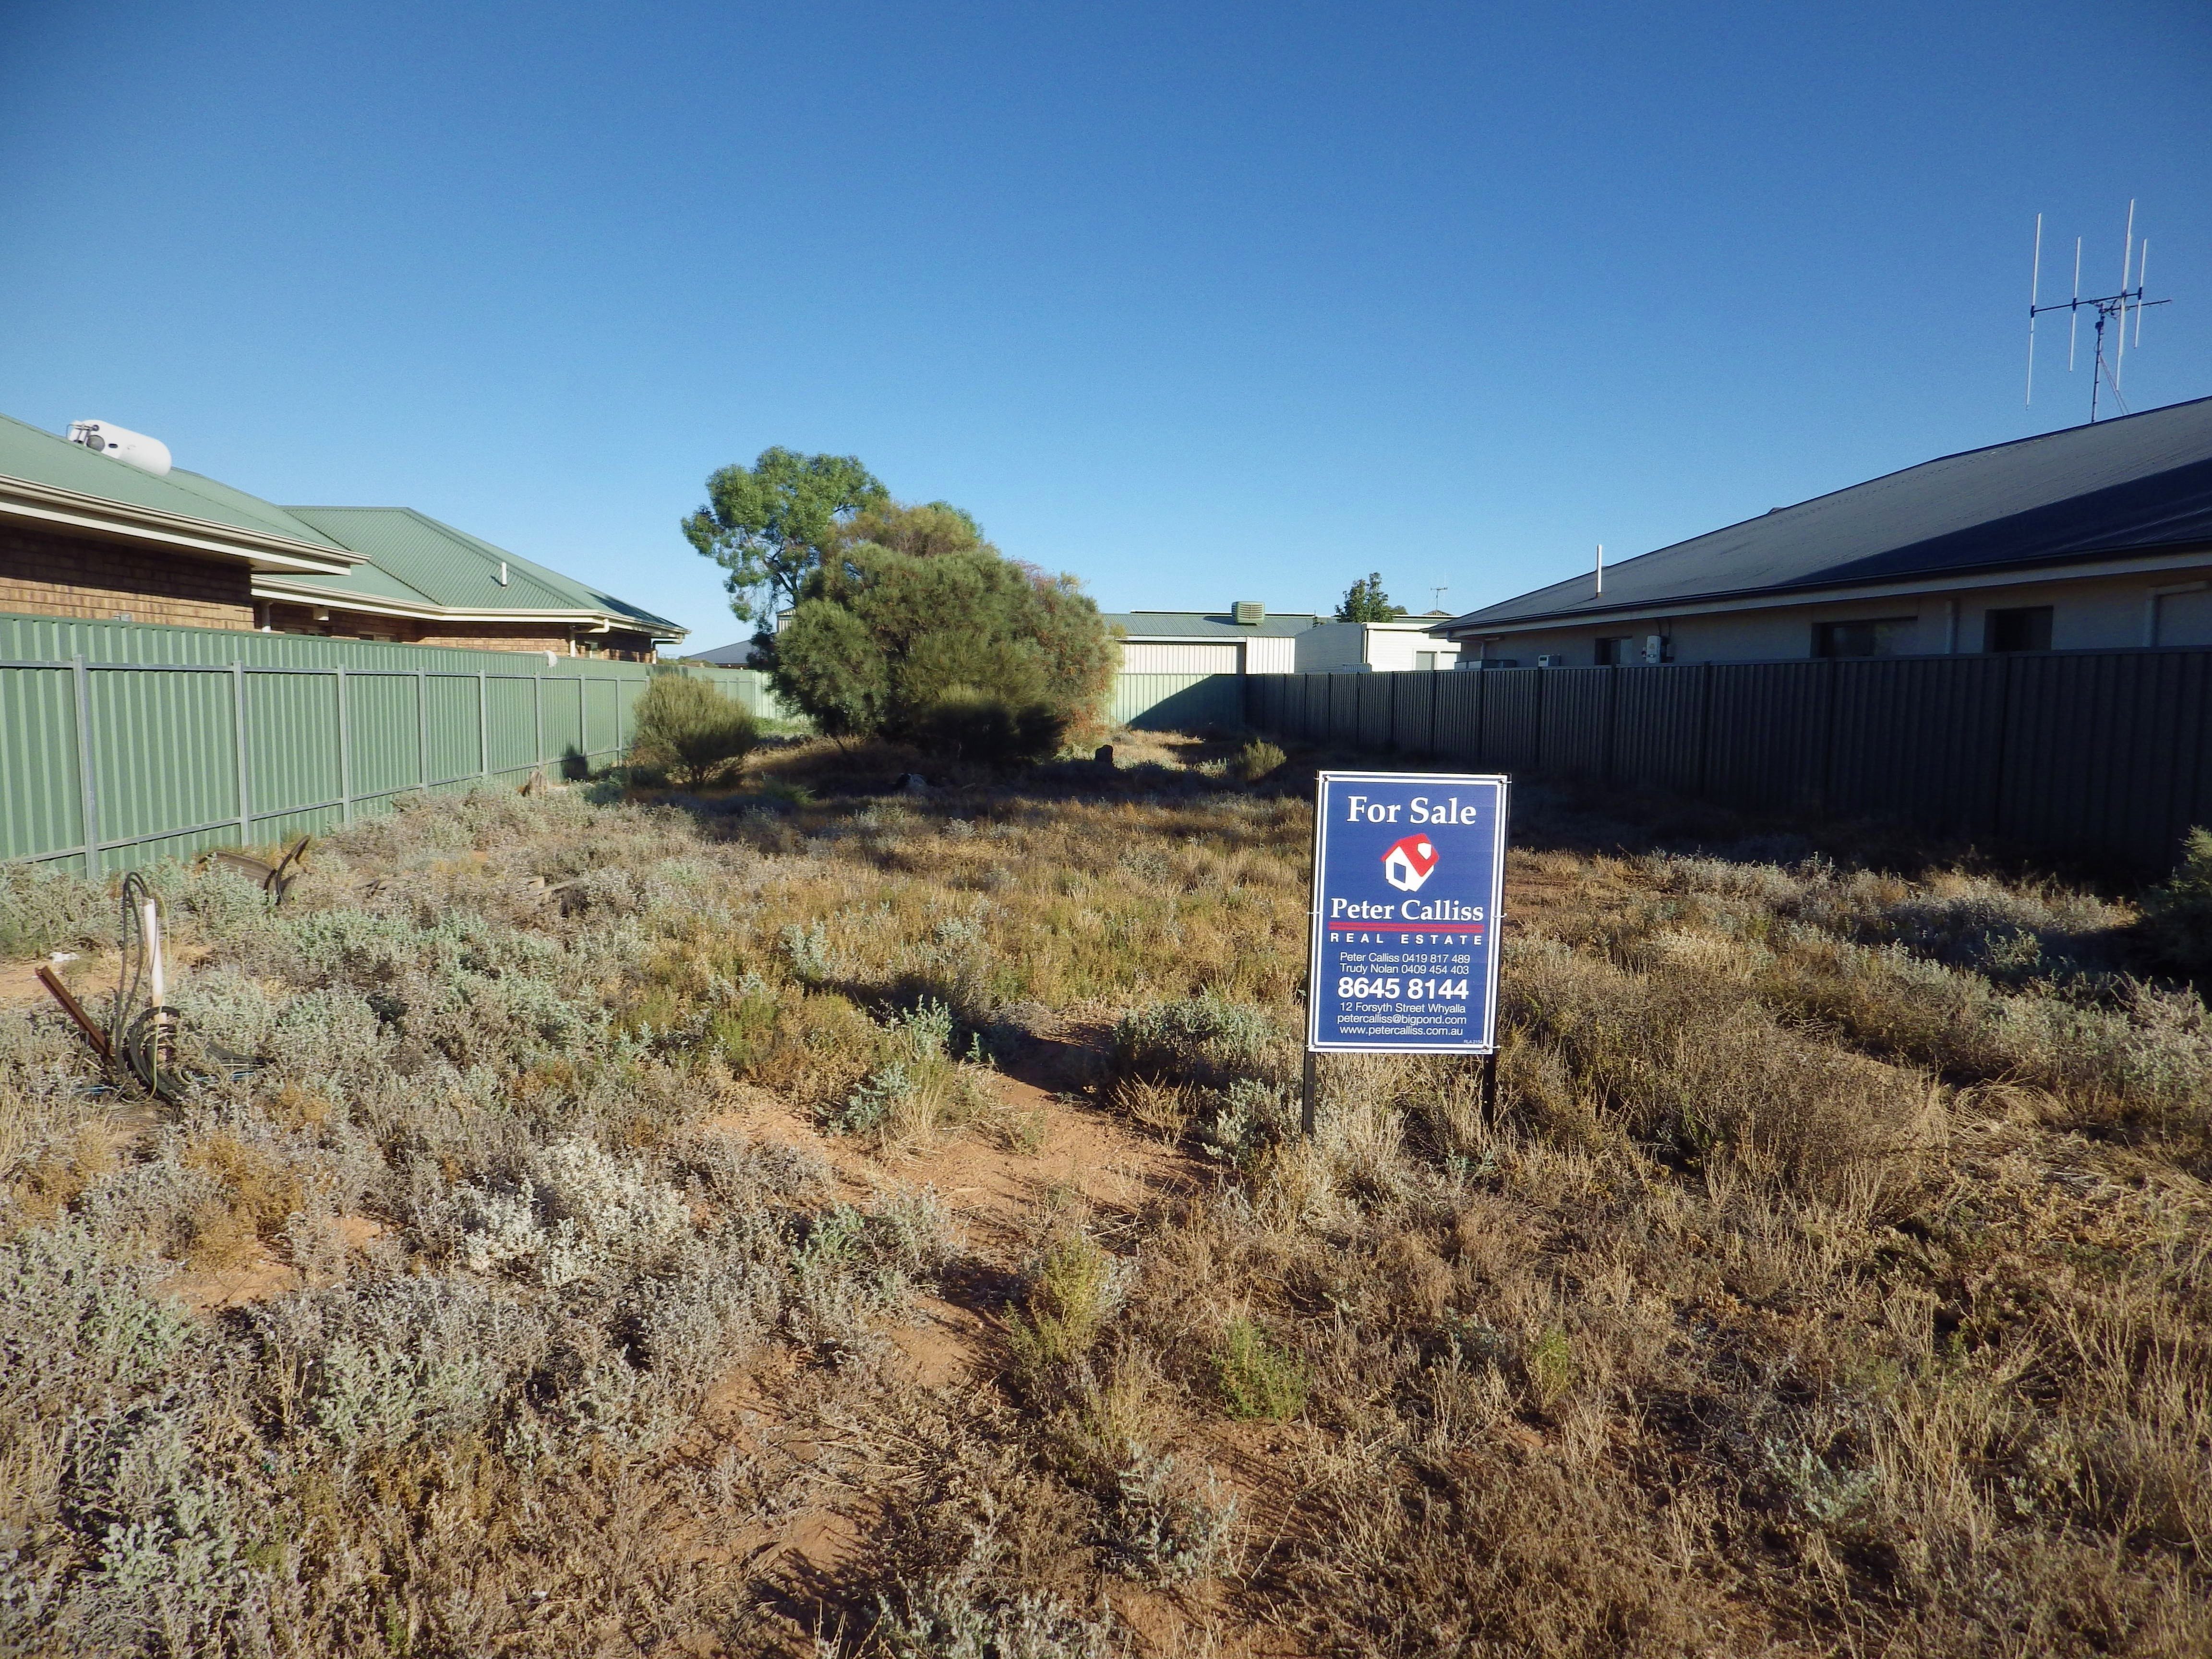 67 ROBINSON STREET WHYALLA JENKINS